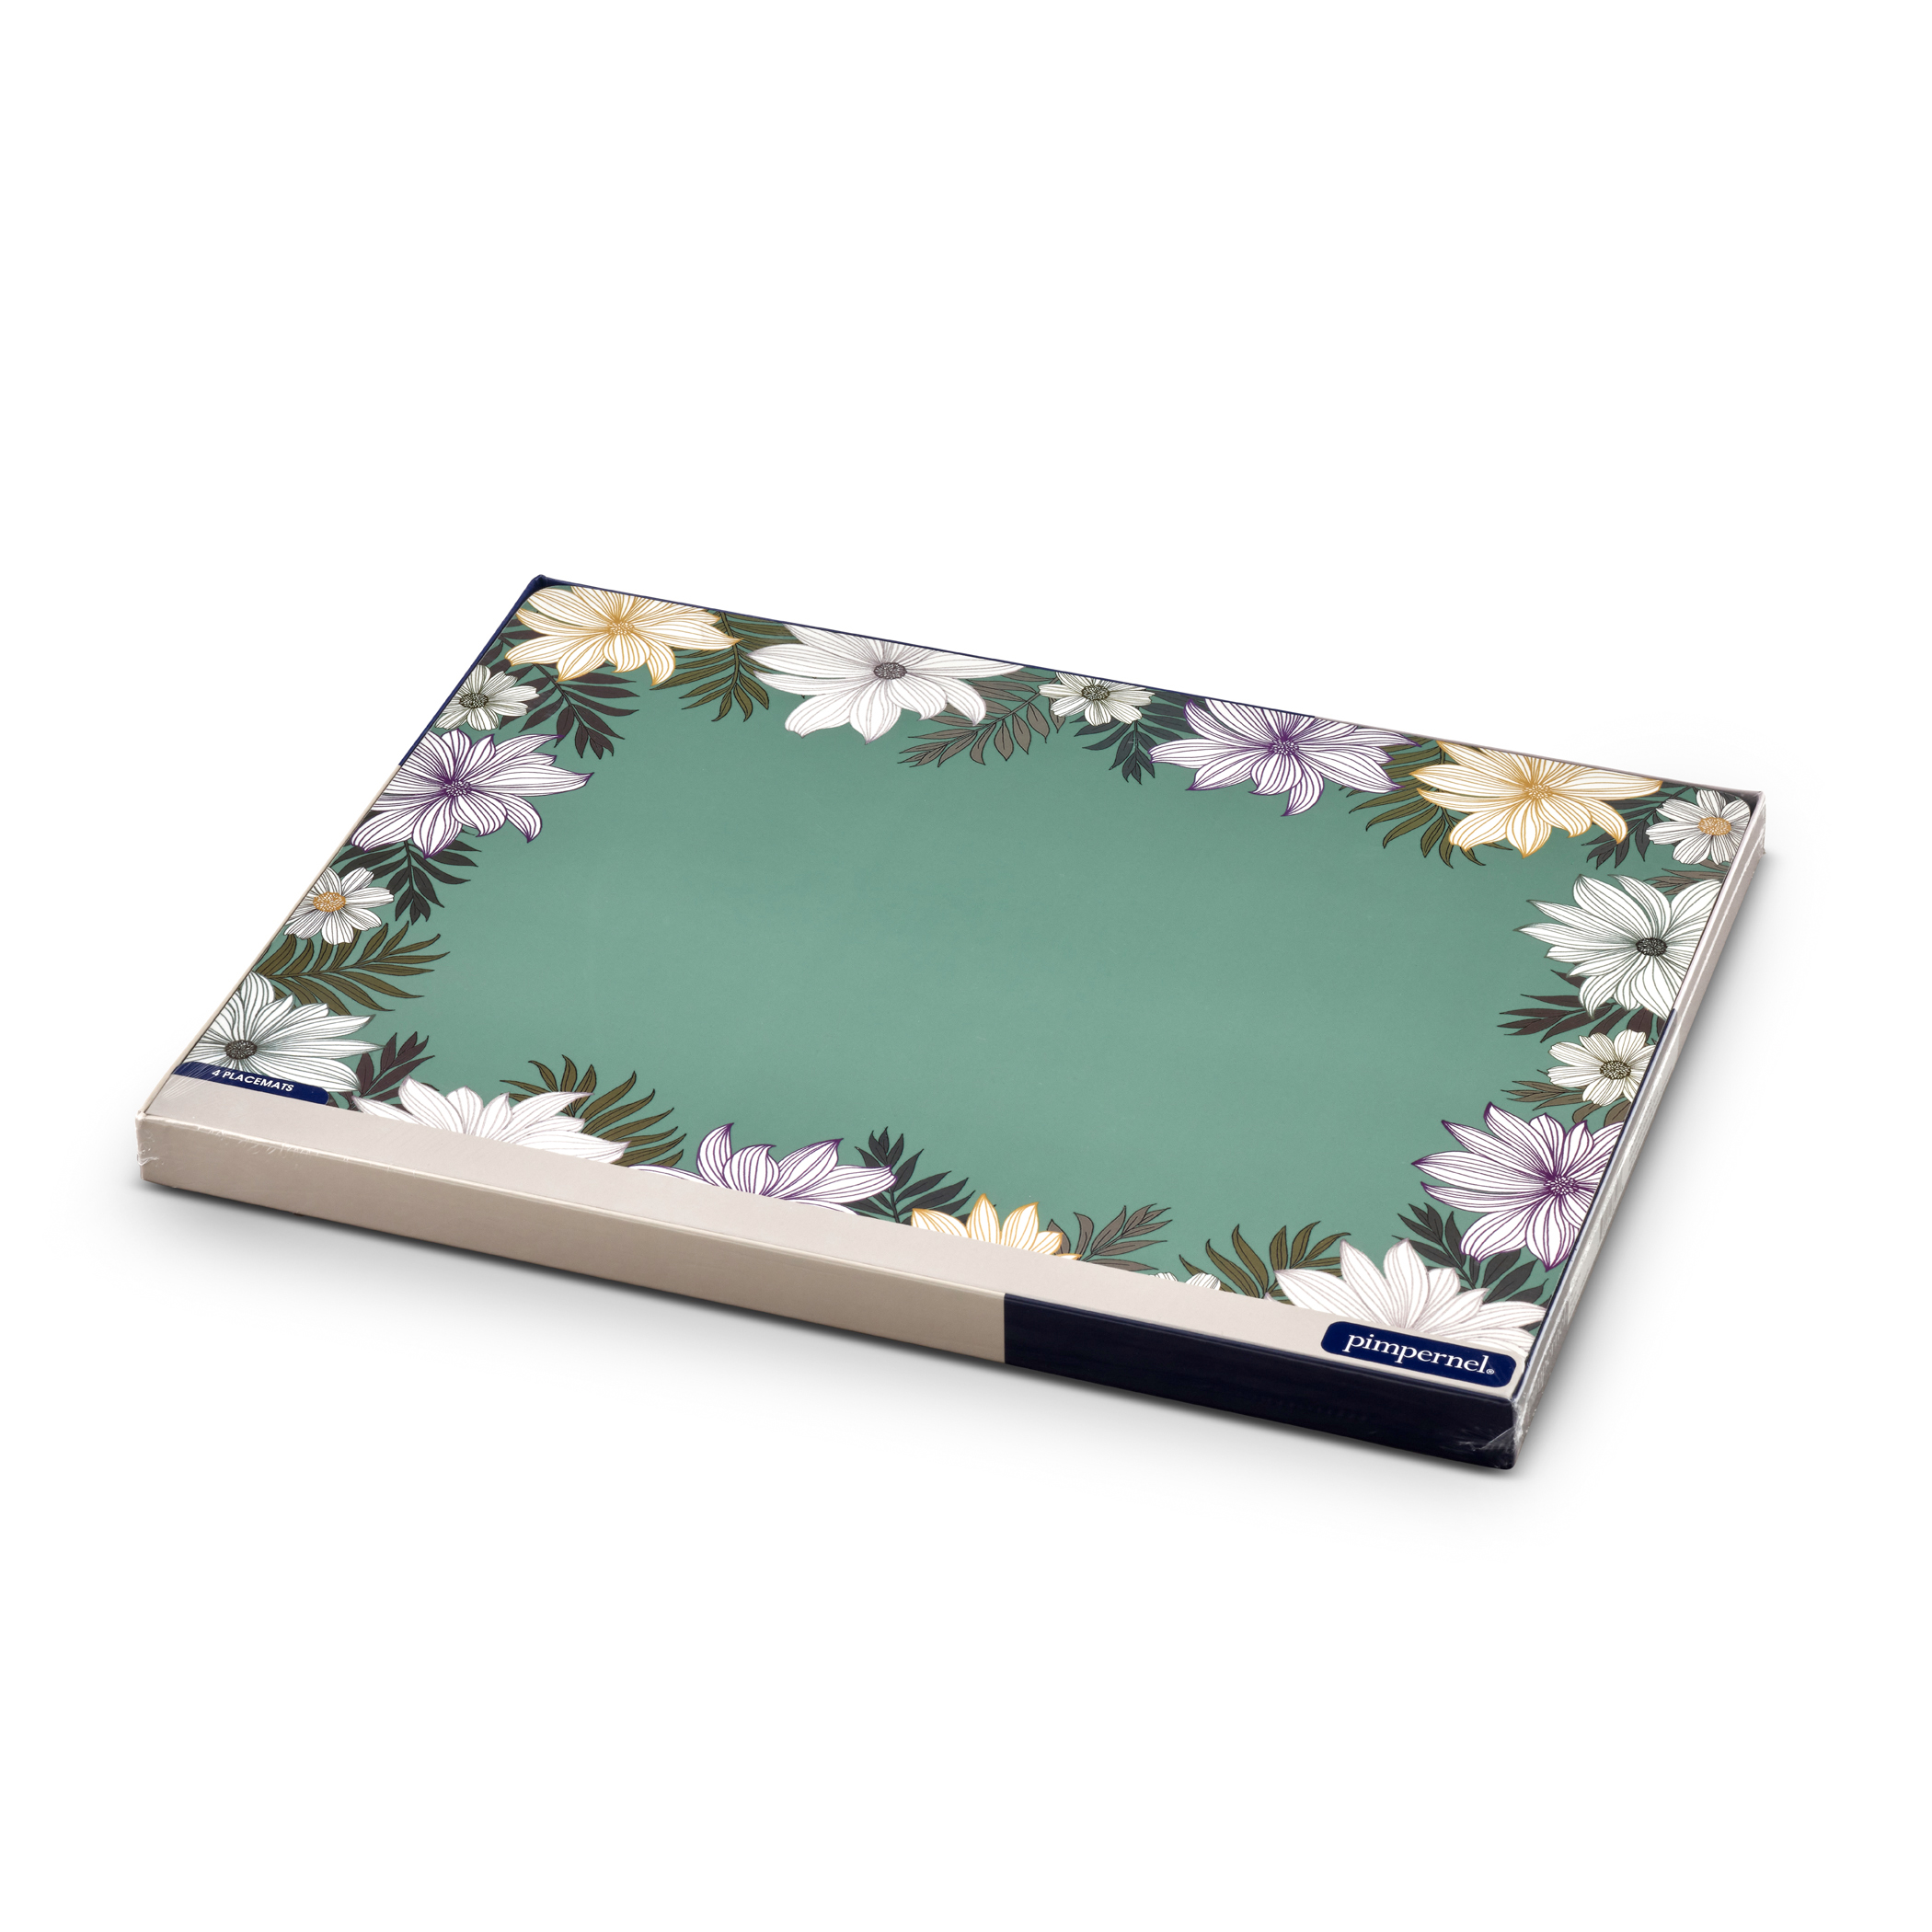 Pimpernel Atrium Placemats Set of 4 image number 4